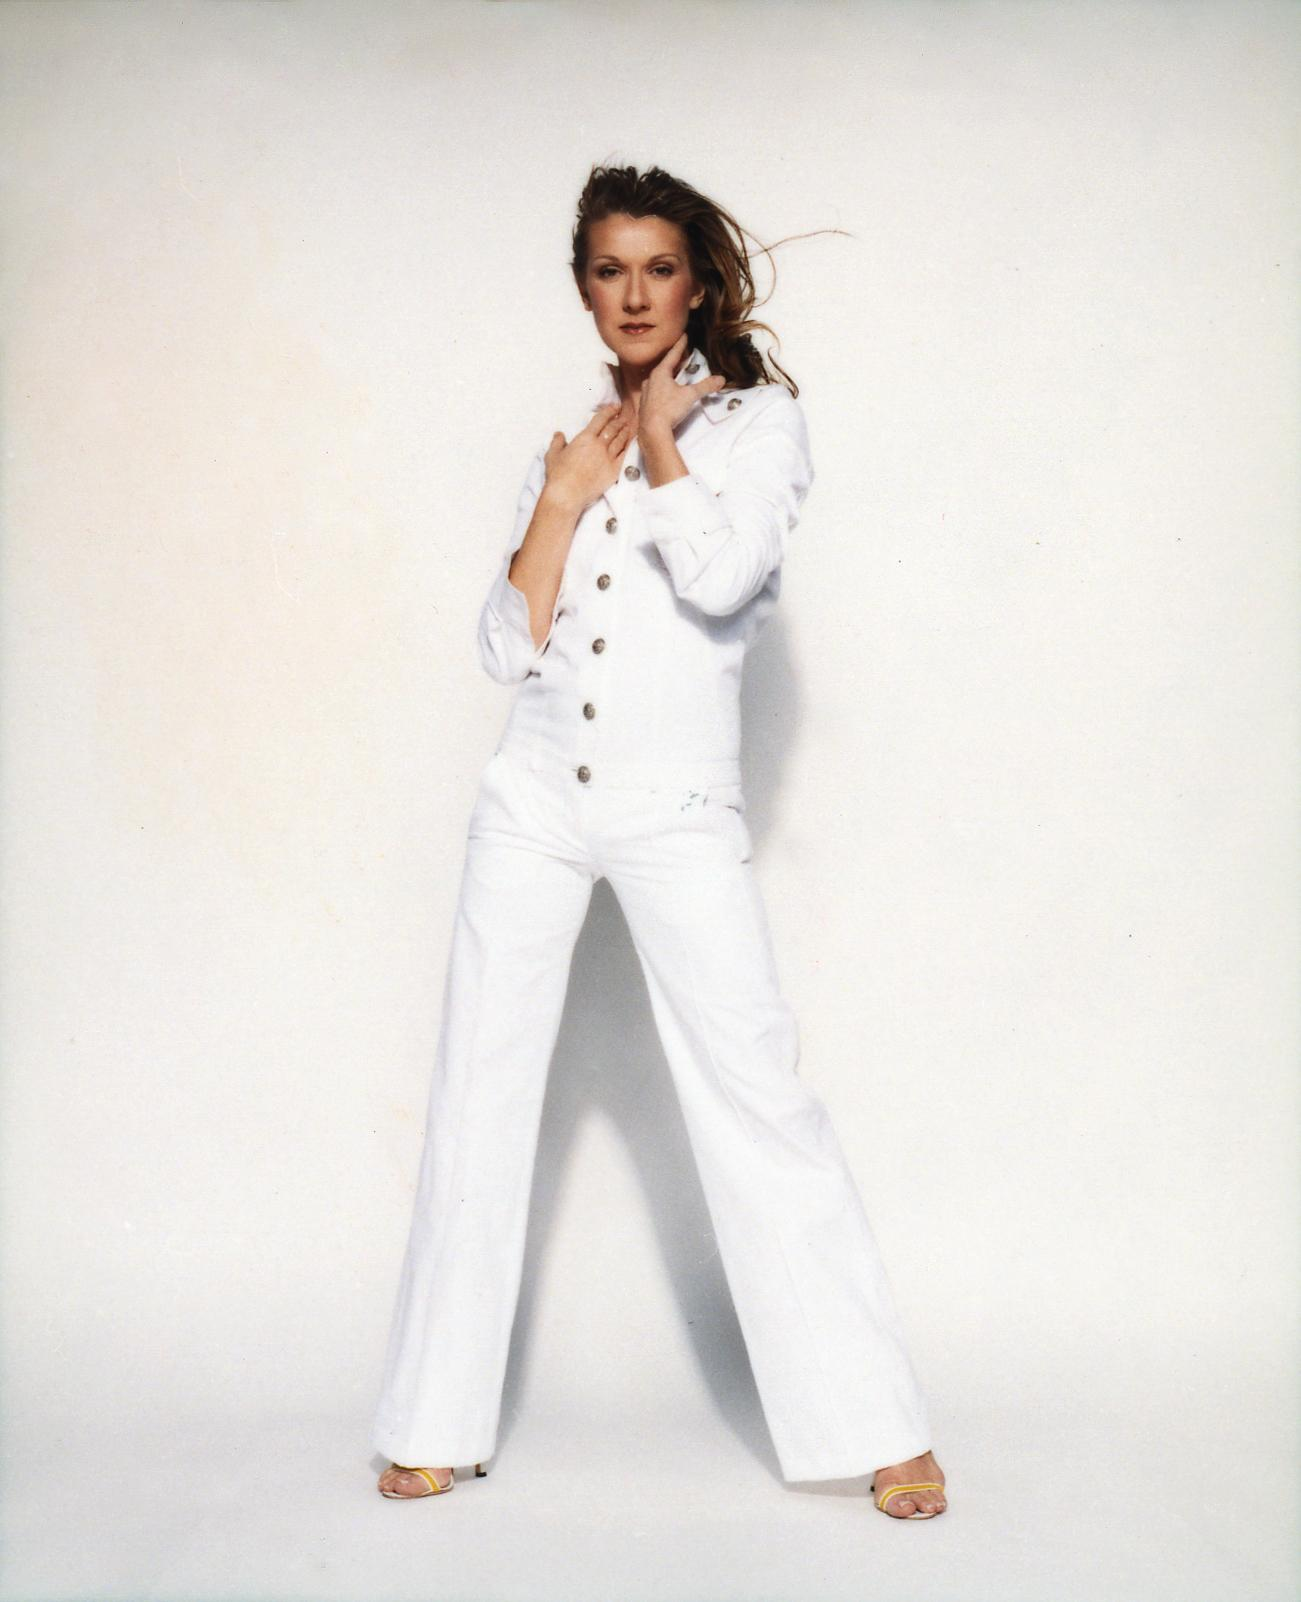 Photo Page: Celine Dion Photo Gallery - Page #5